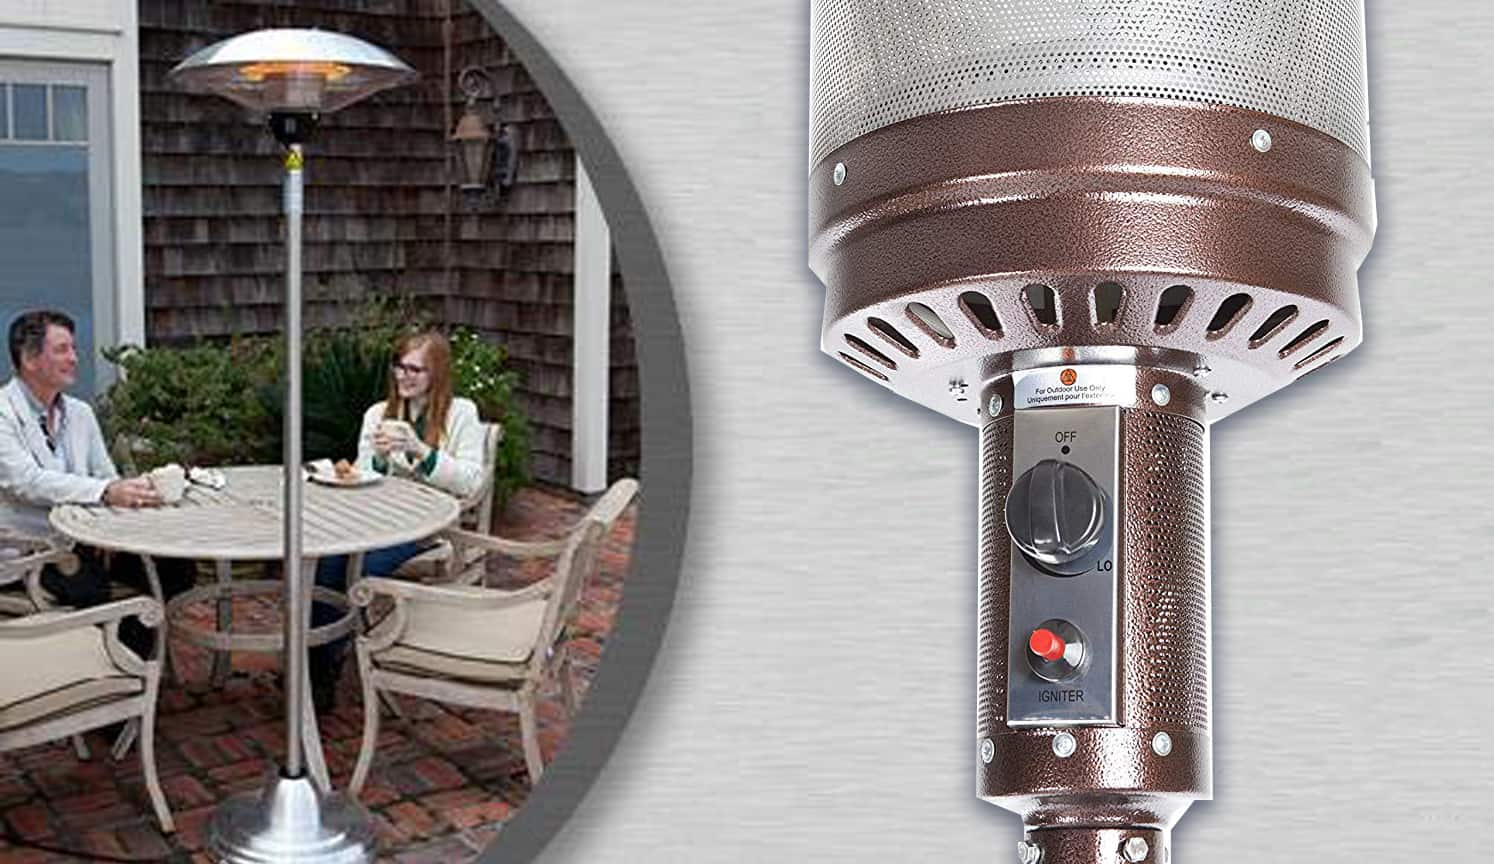 Outdoor Patio Heater as the first related product of Propane Patio Heater